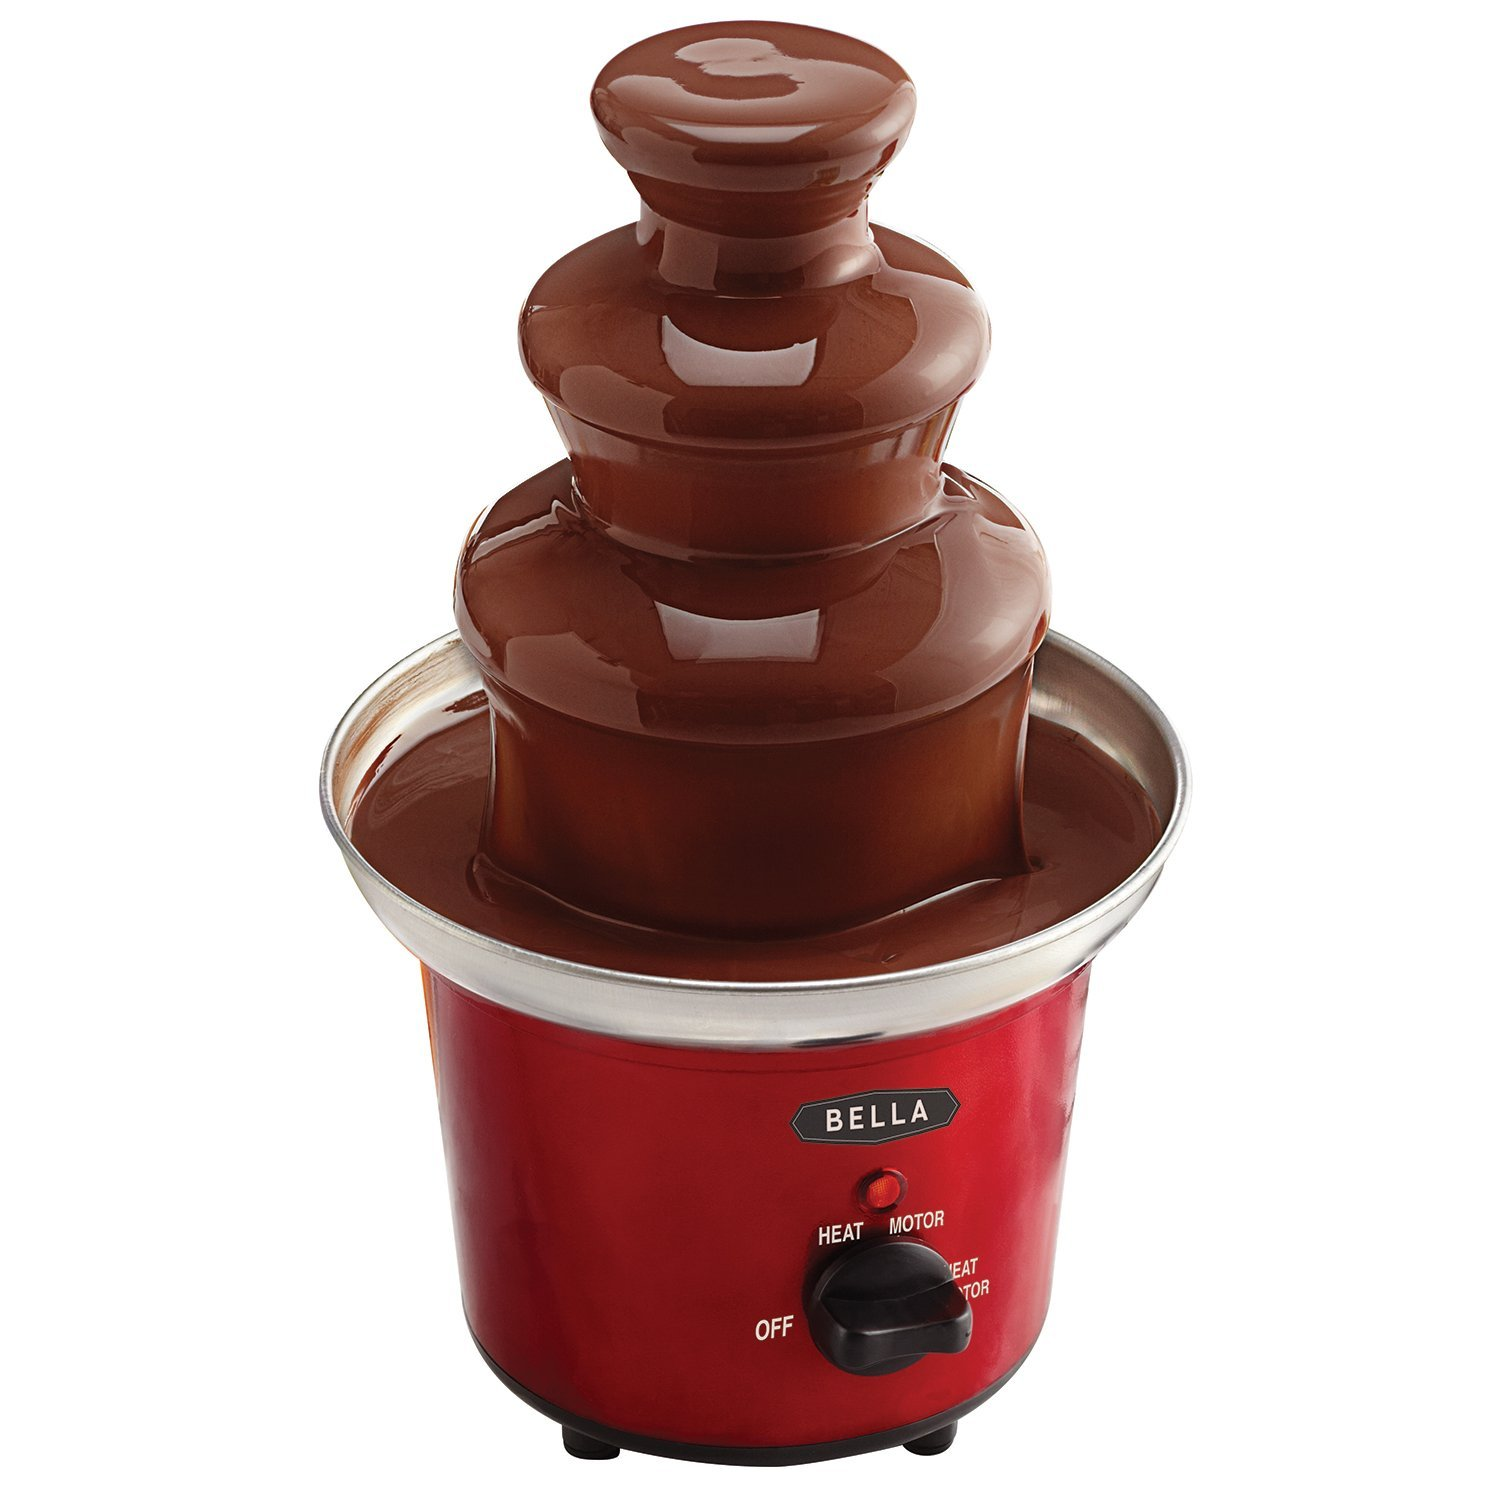 BELLA 13715 CHOCOLATE FOUNTAIN RED - 2 - Online Auction Cleveland